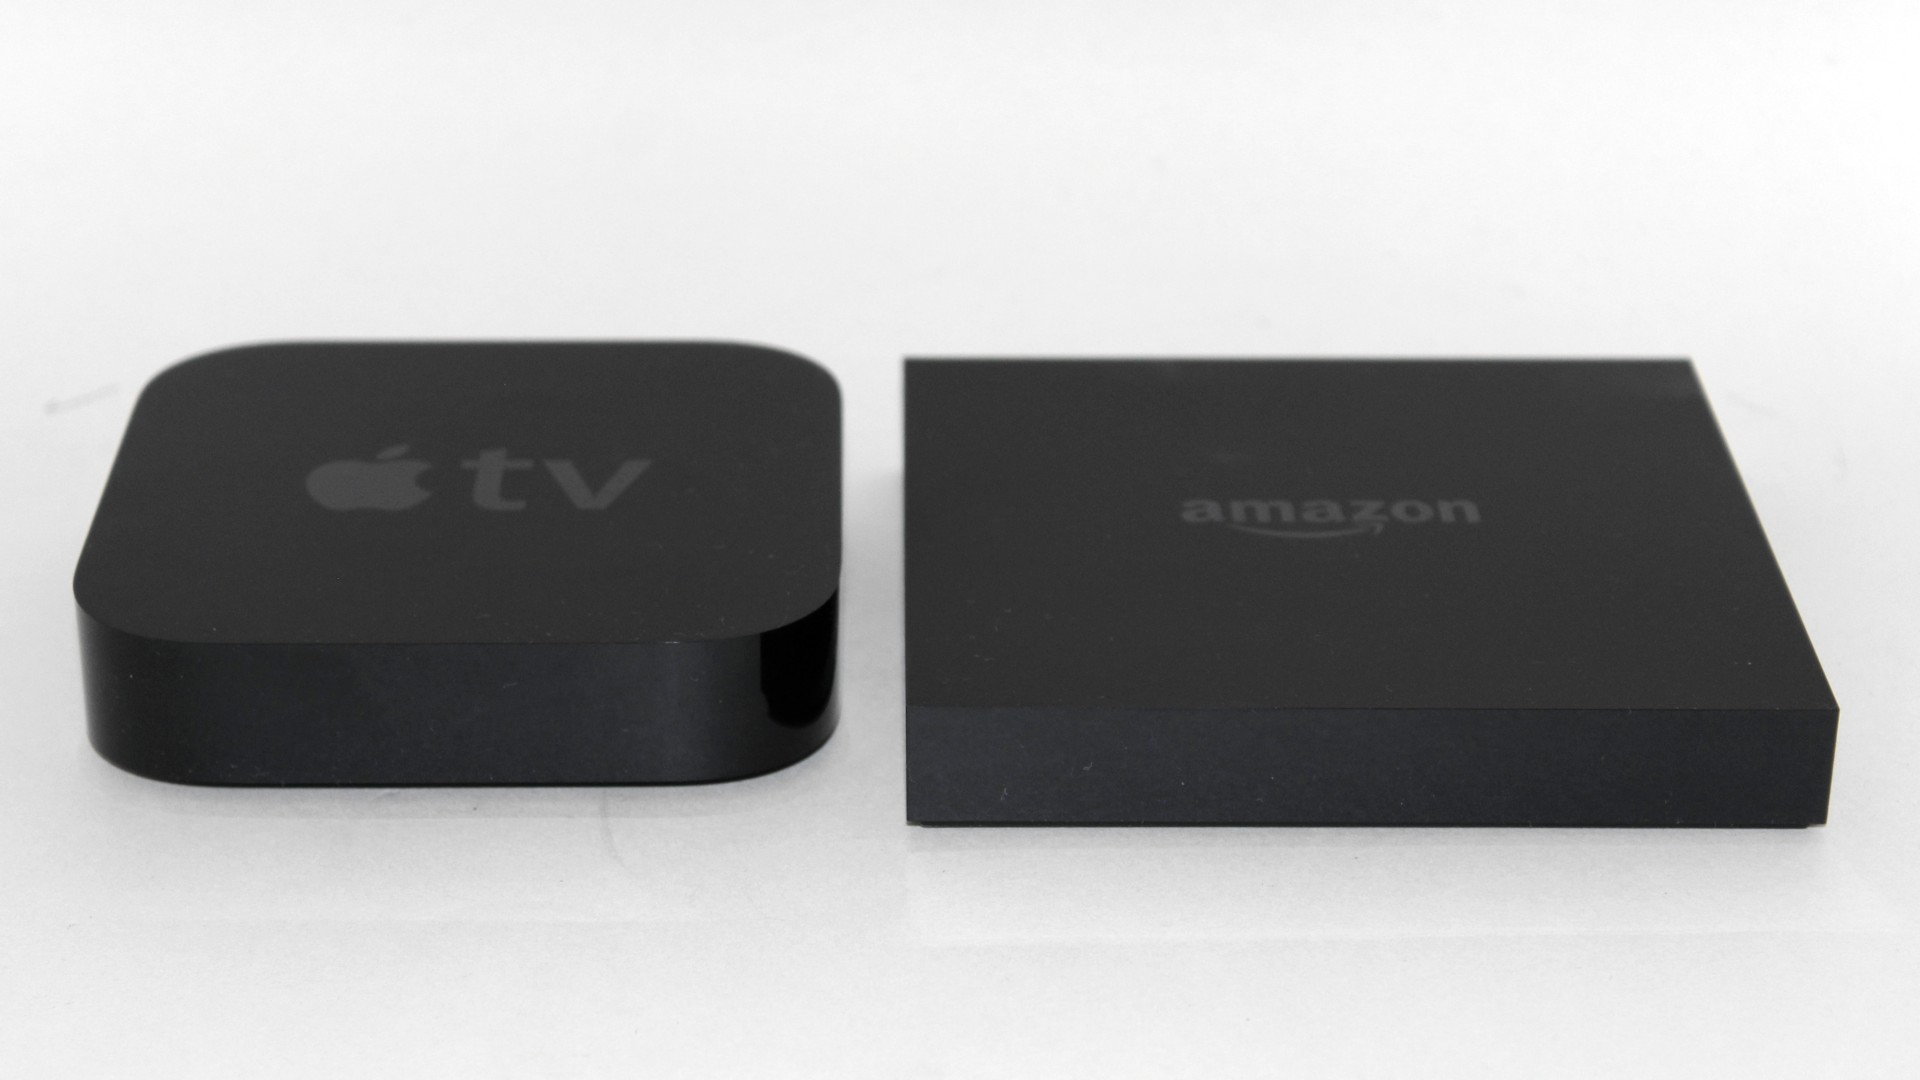 Amazon Fire TV and Apple TV side by side